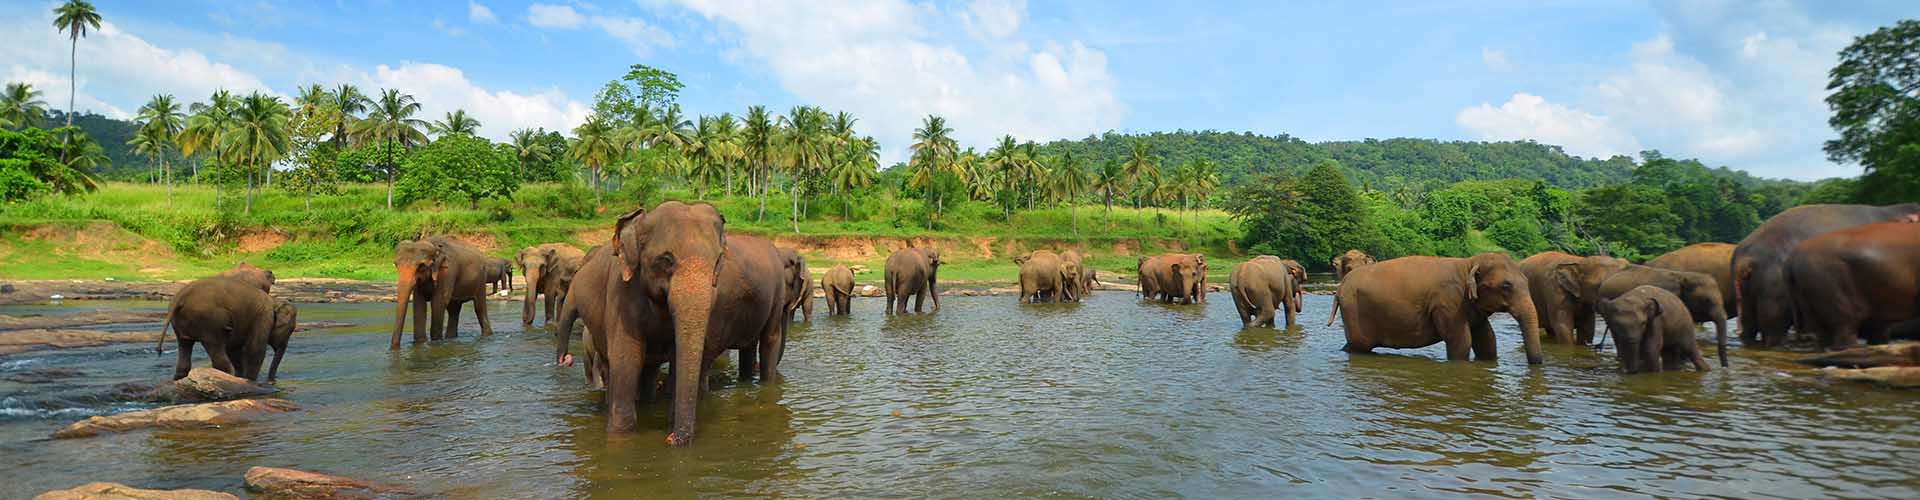 sri lanka elephants and nature of sri lanka1